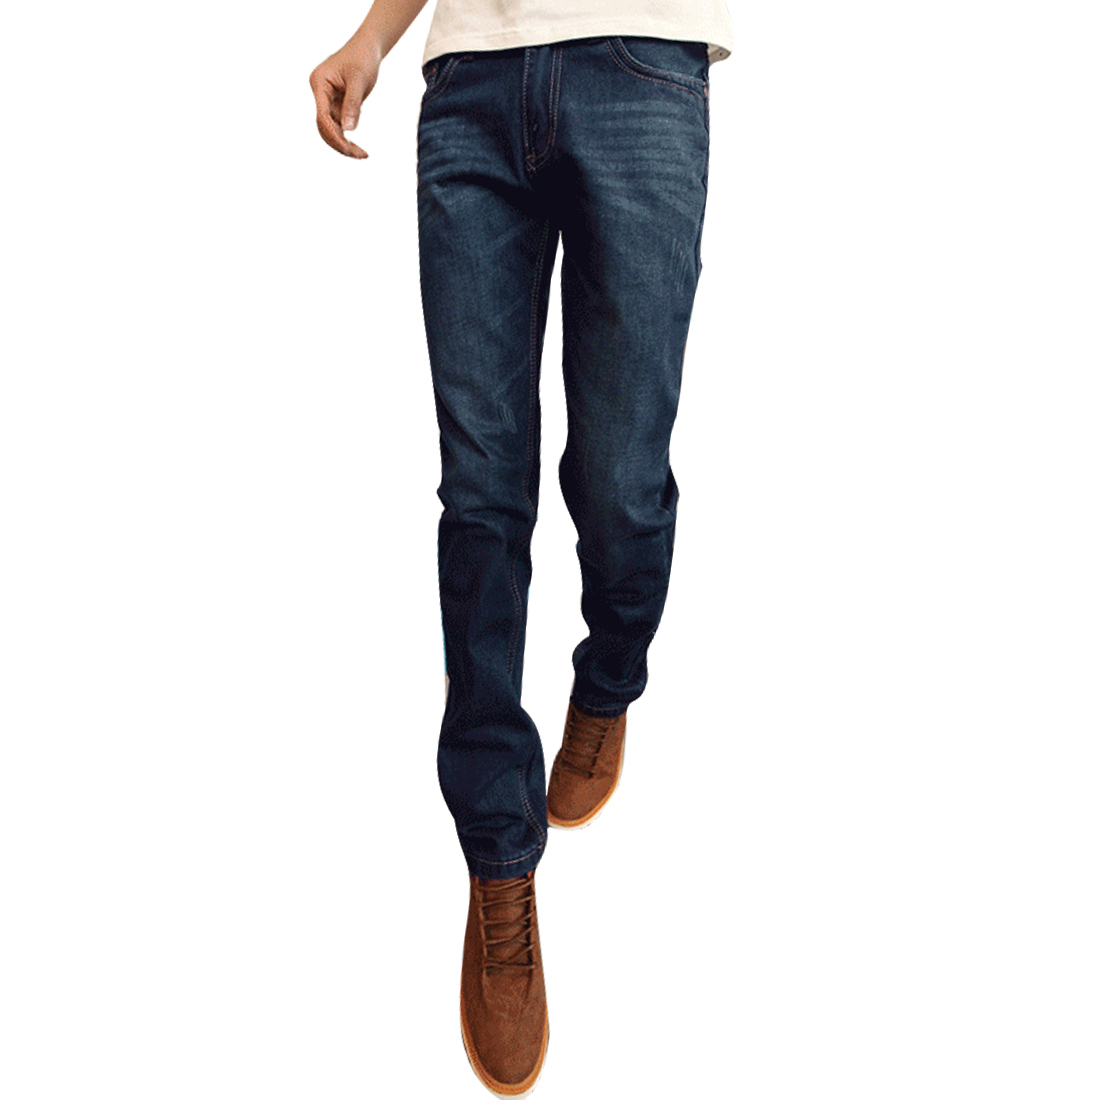 W33 Blue Concealed Zipper Hip Pockets Slim Fit Men Fashion Jeans Pants